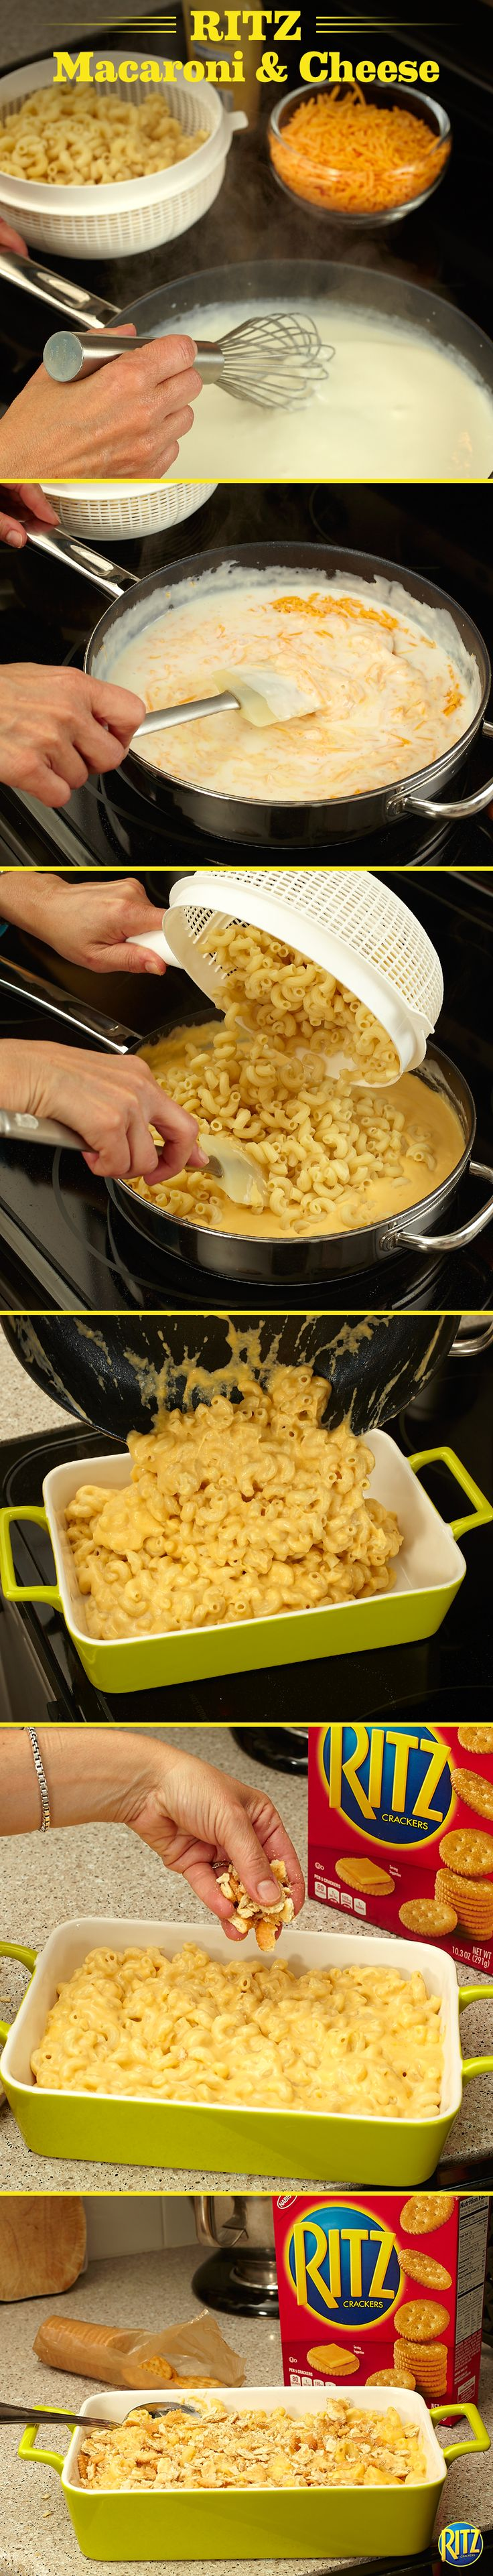 Ritzy macaroni cheese recipe food recipes cooking